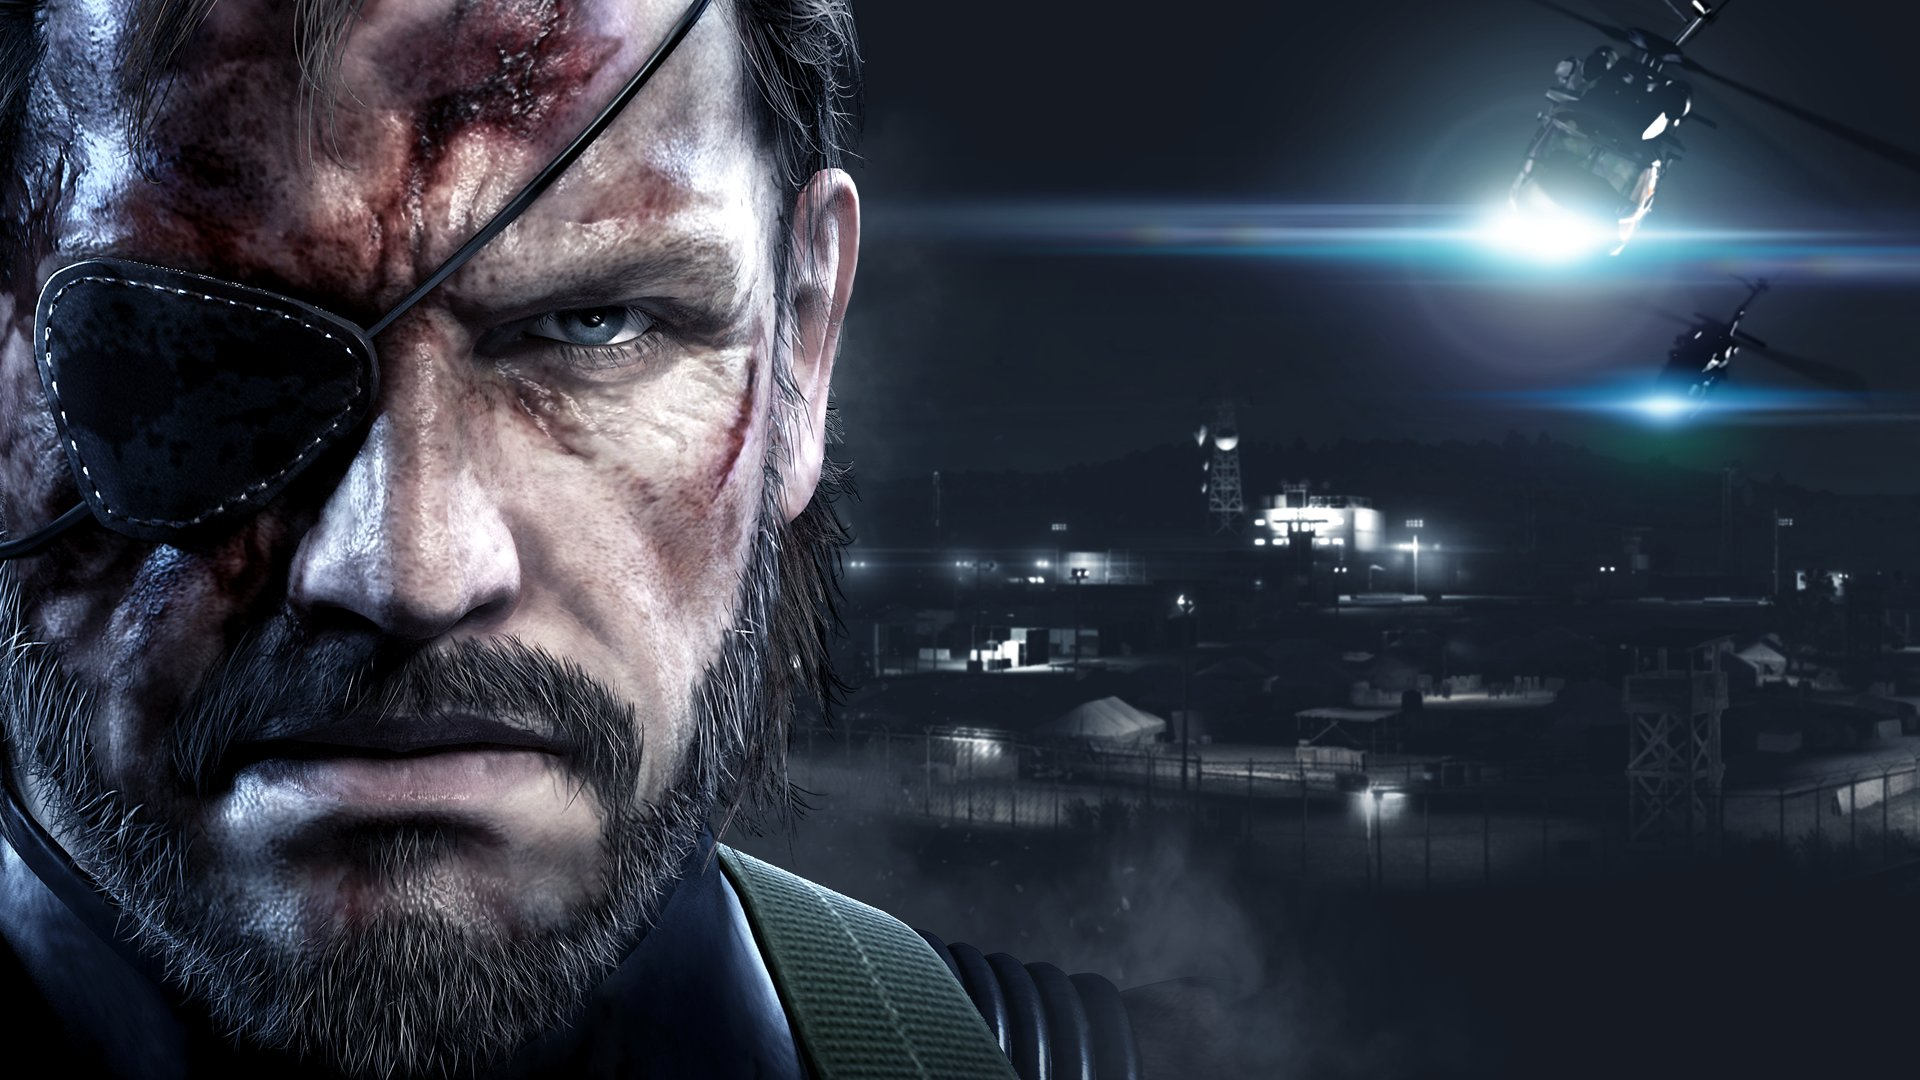 metal gear solid v ground zeroes wallpaper 1920x1080